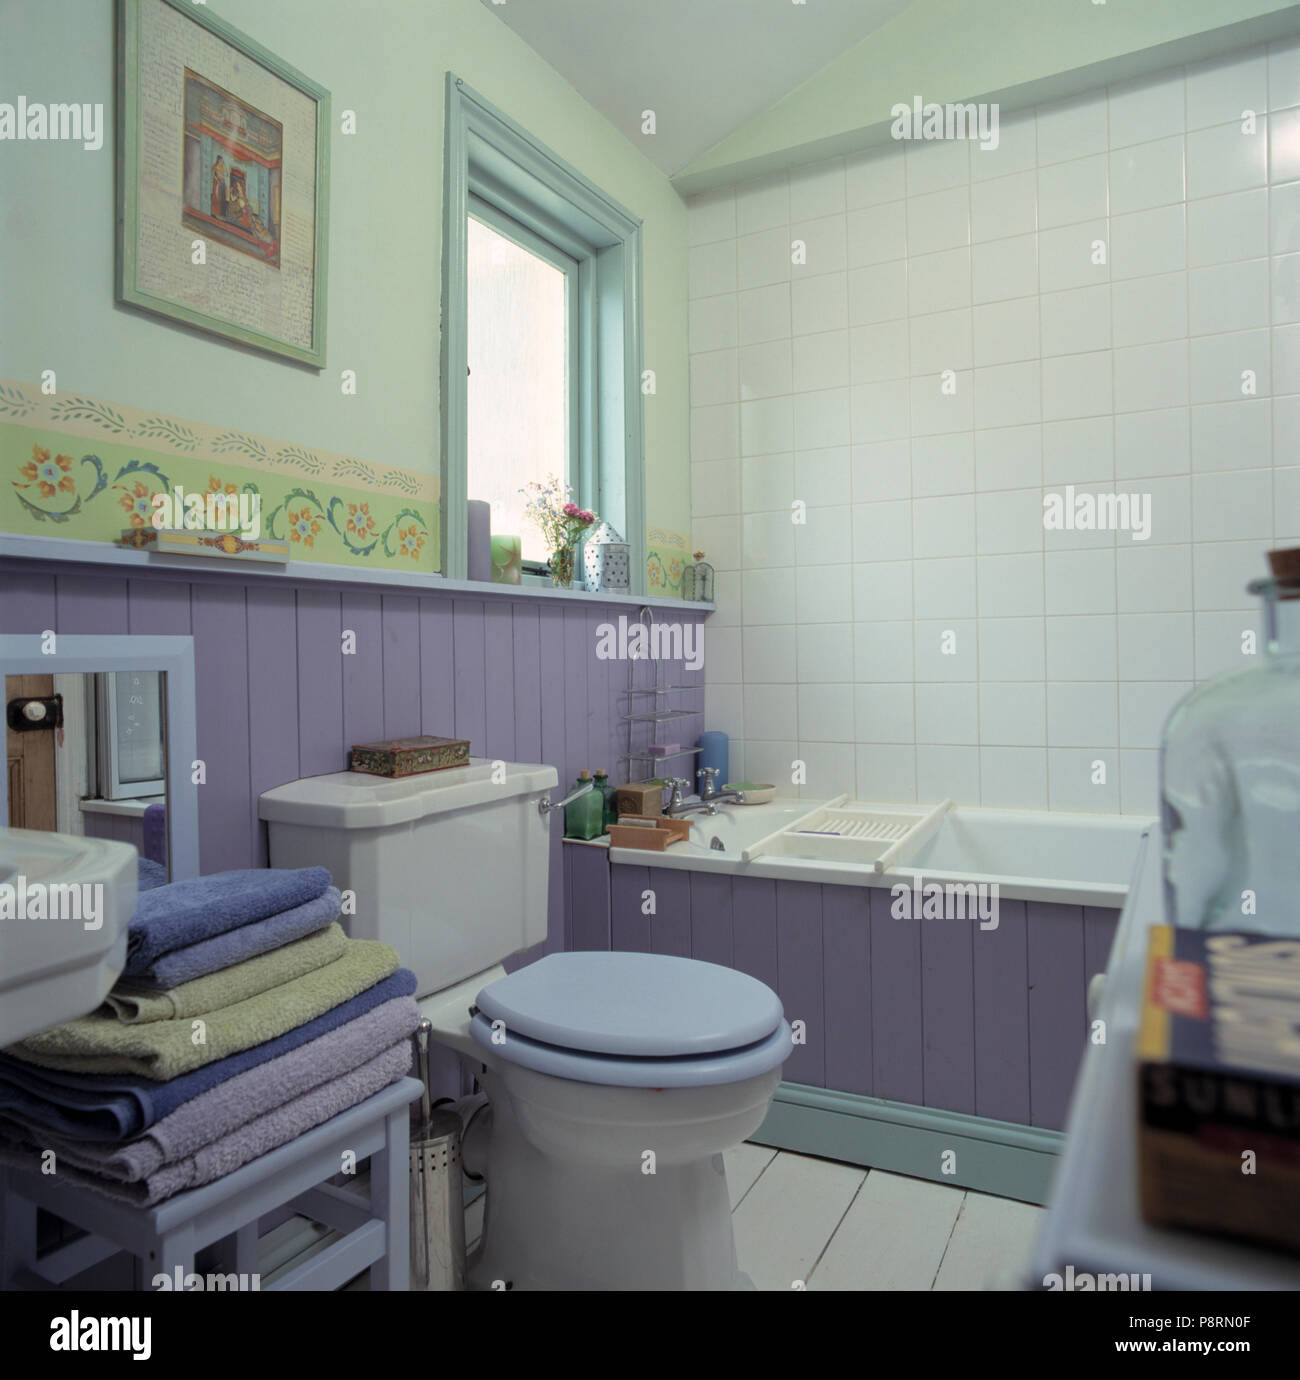 Pile Of Mauve Towels Beside Toilet With Mauve Seat In Bathroom With